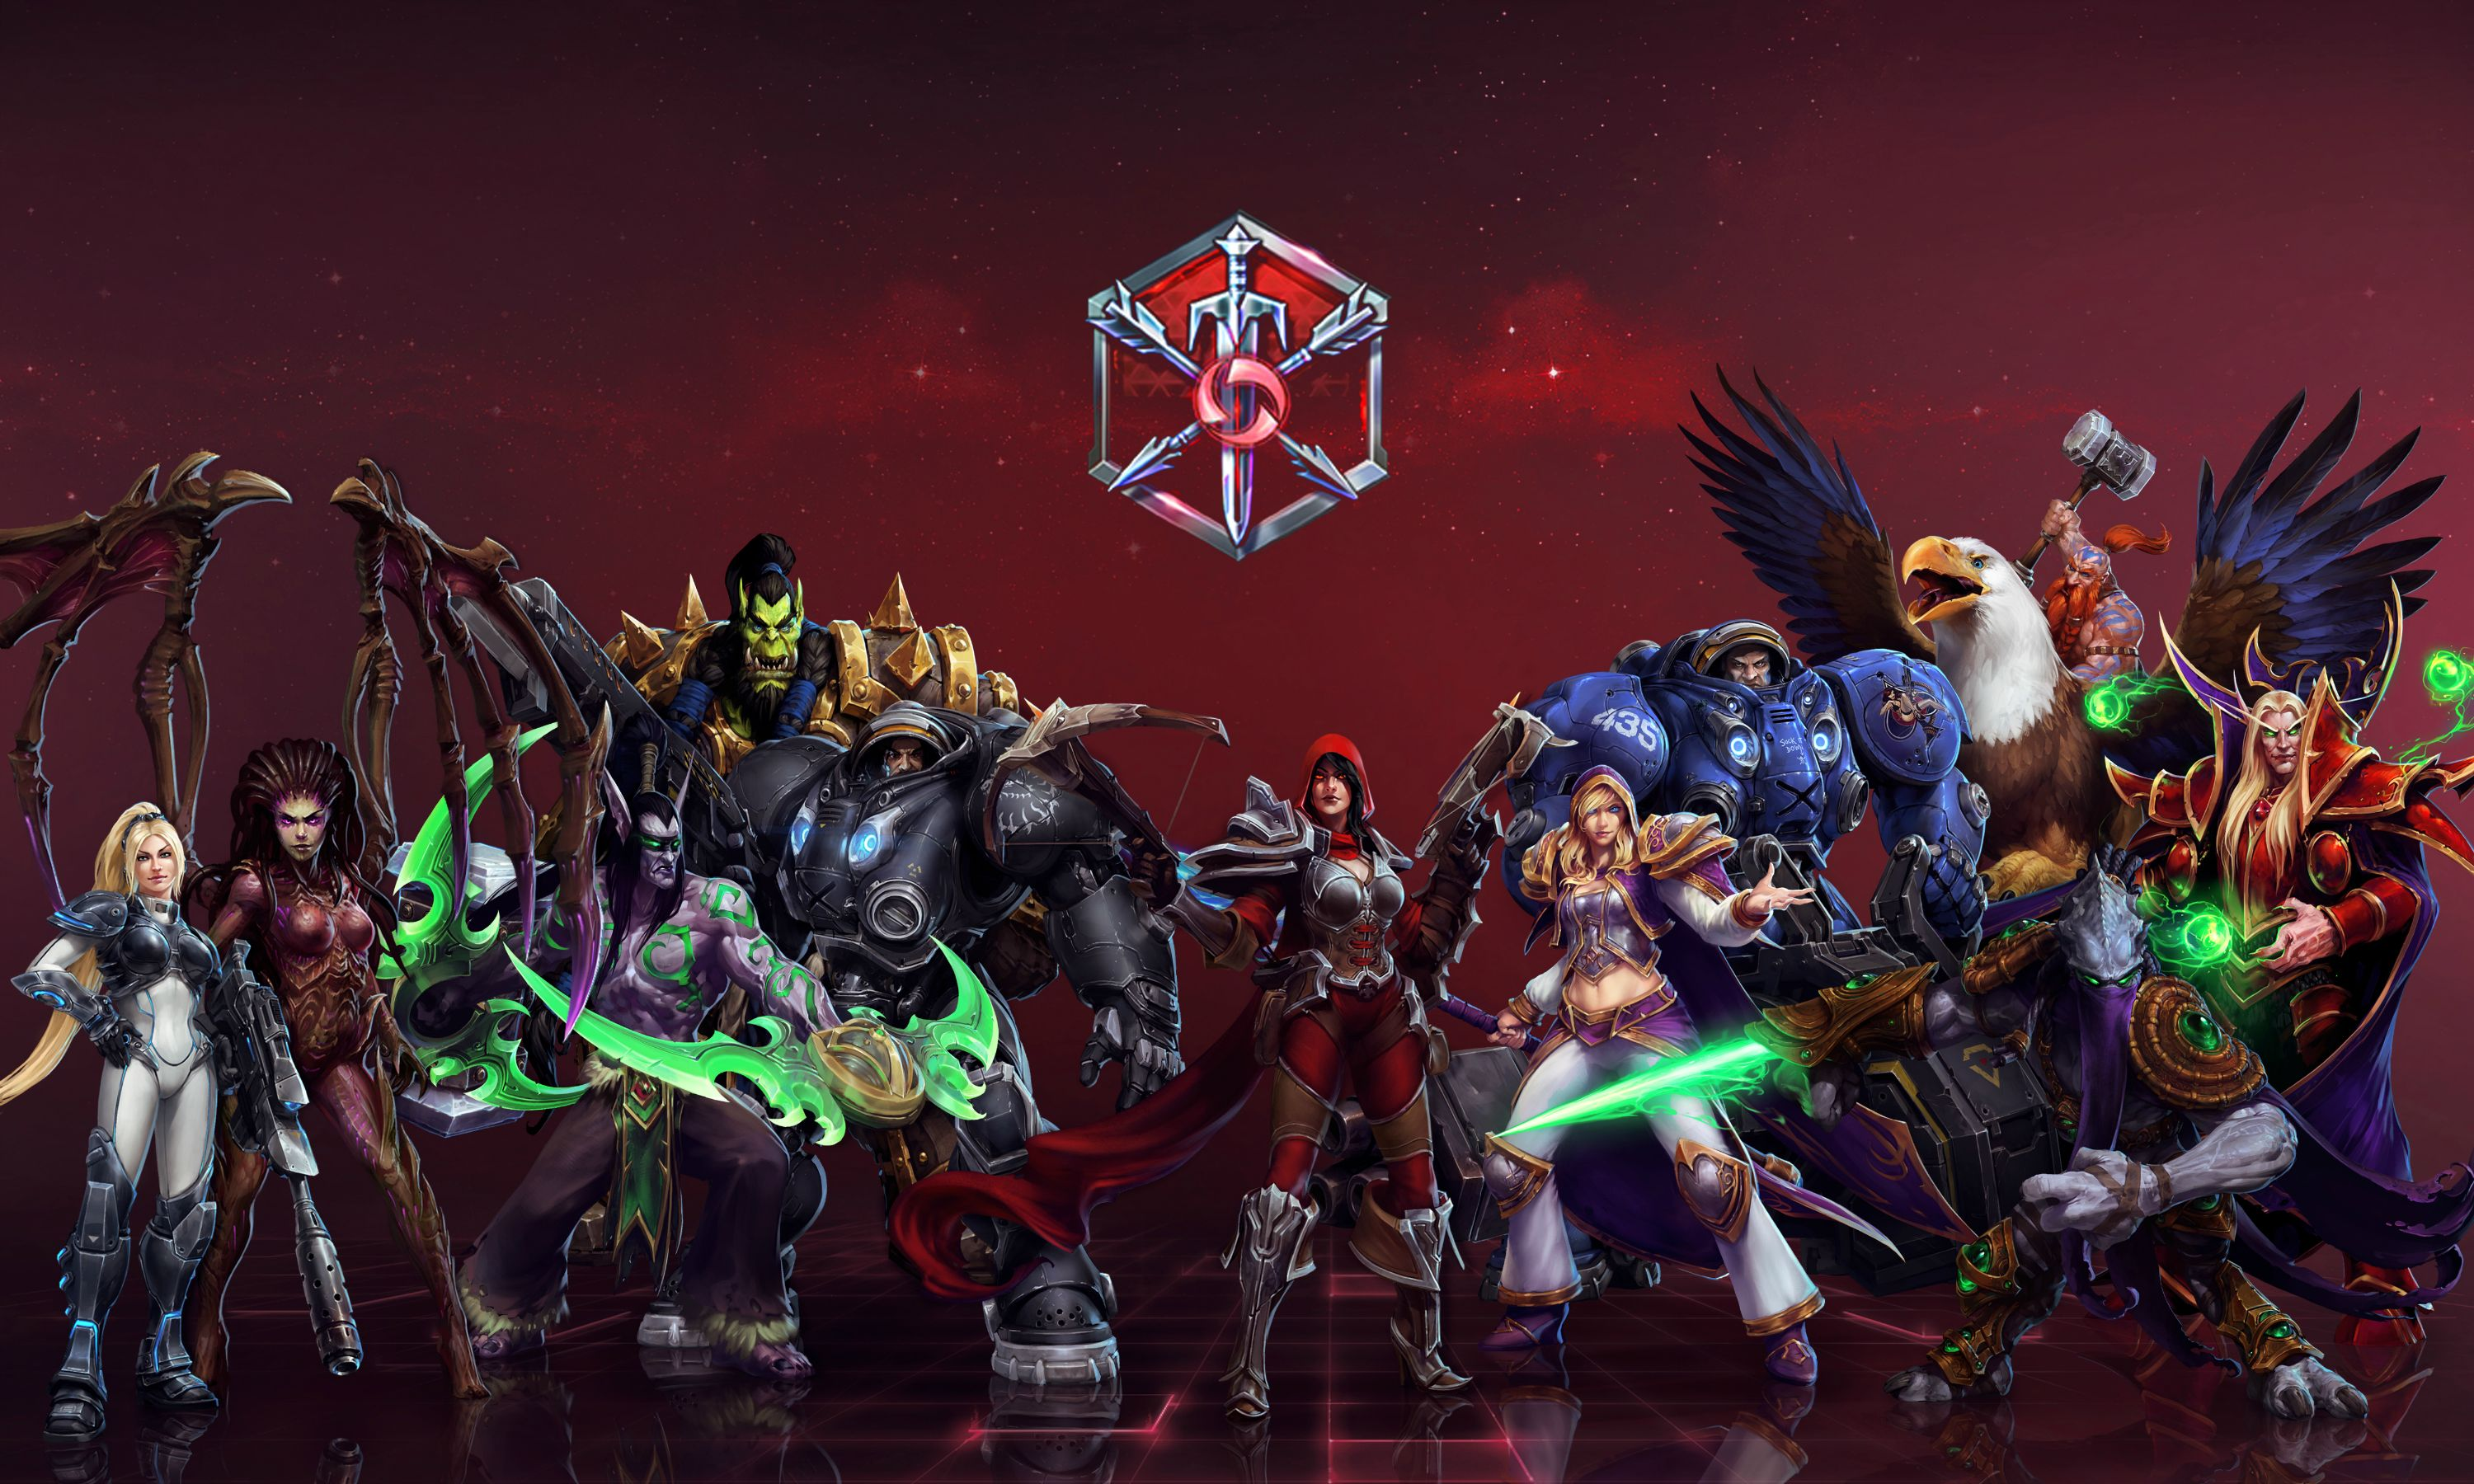 Heroes Of The Storm Wallpapers Hd Posted By Samantha Tremblay